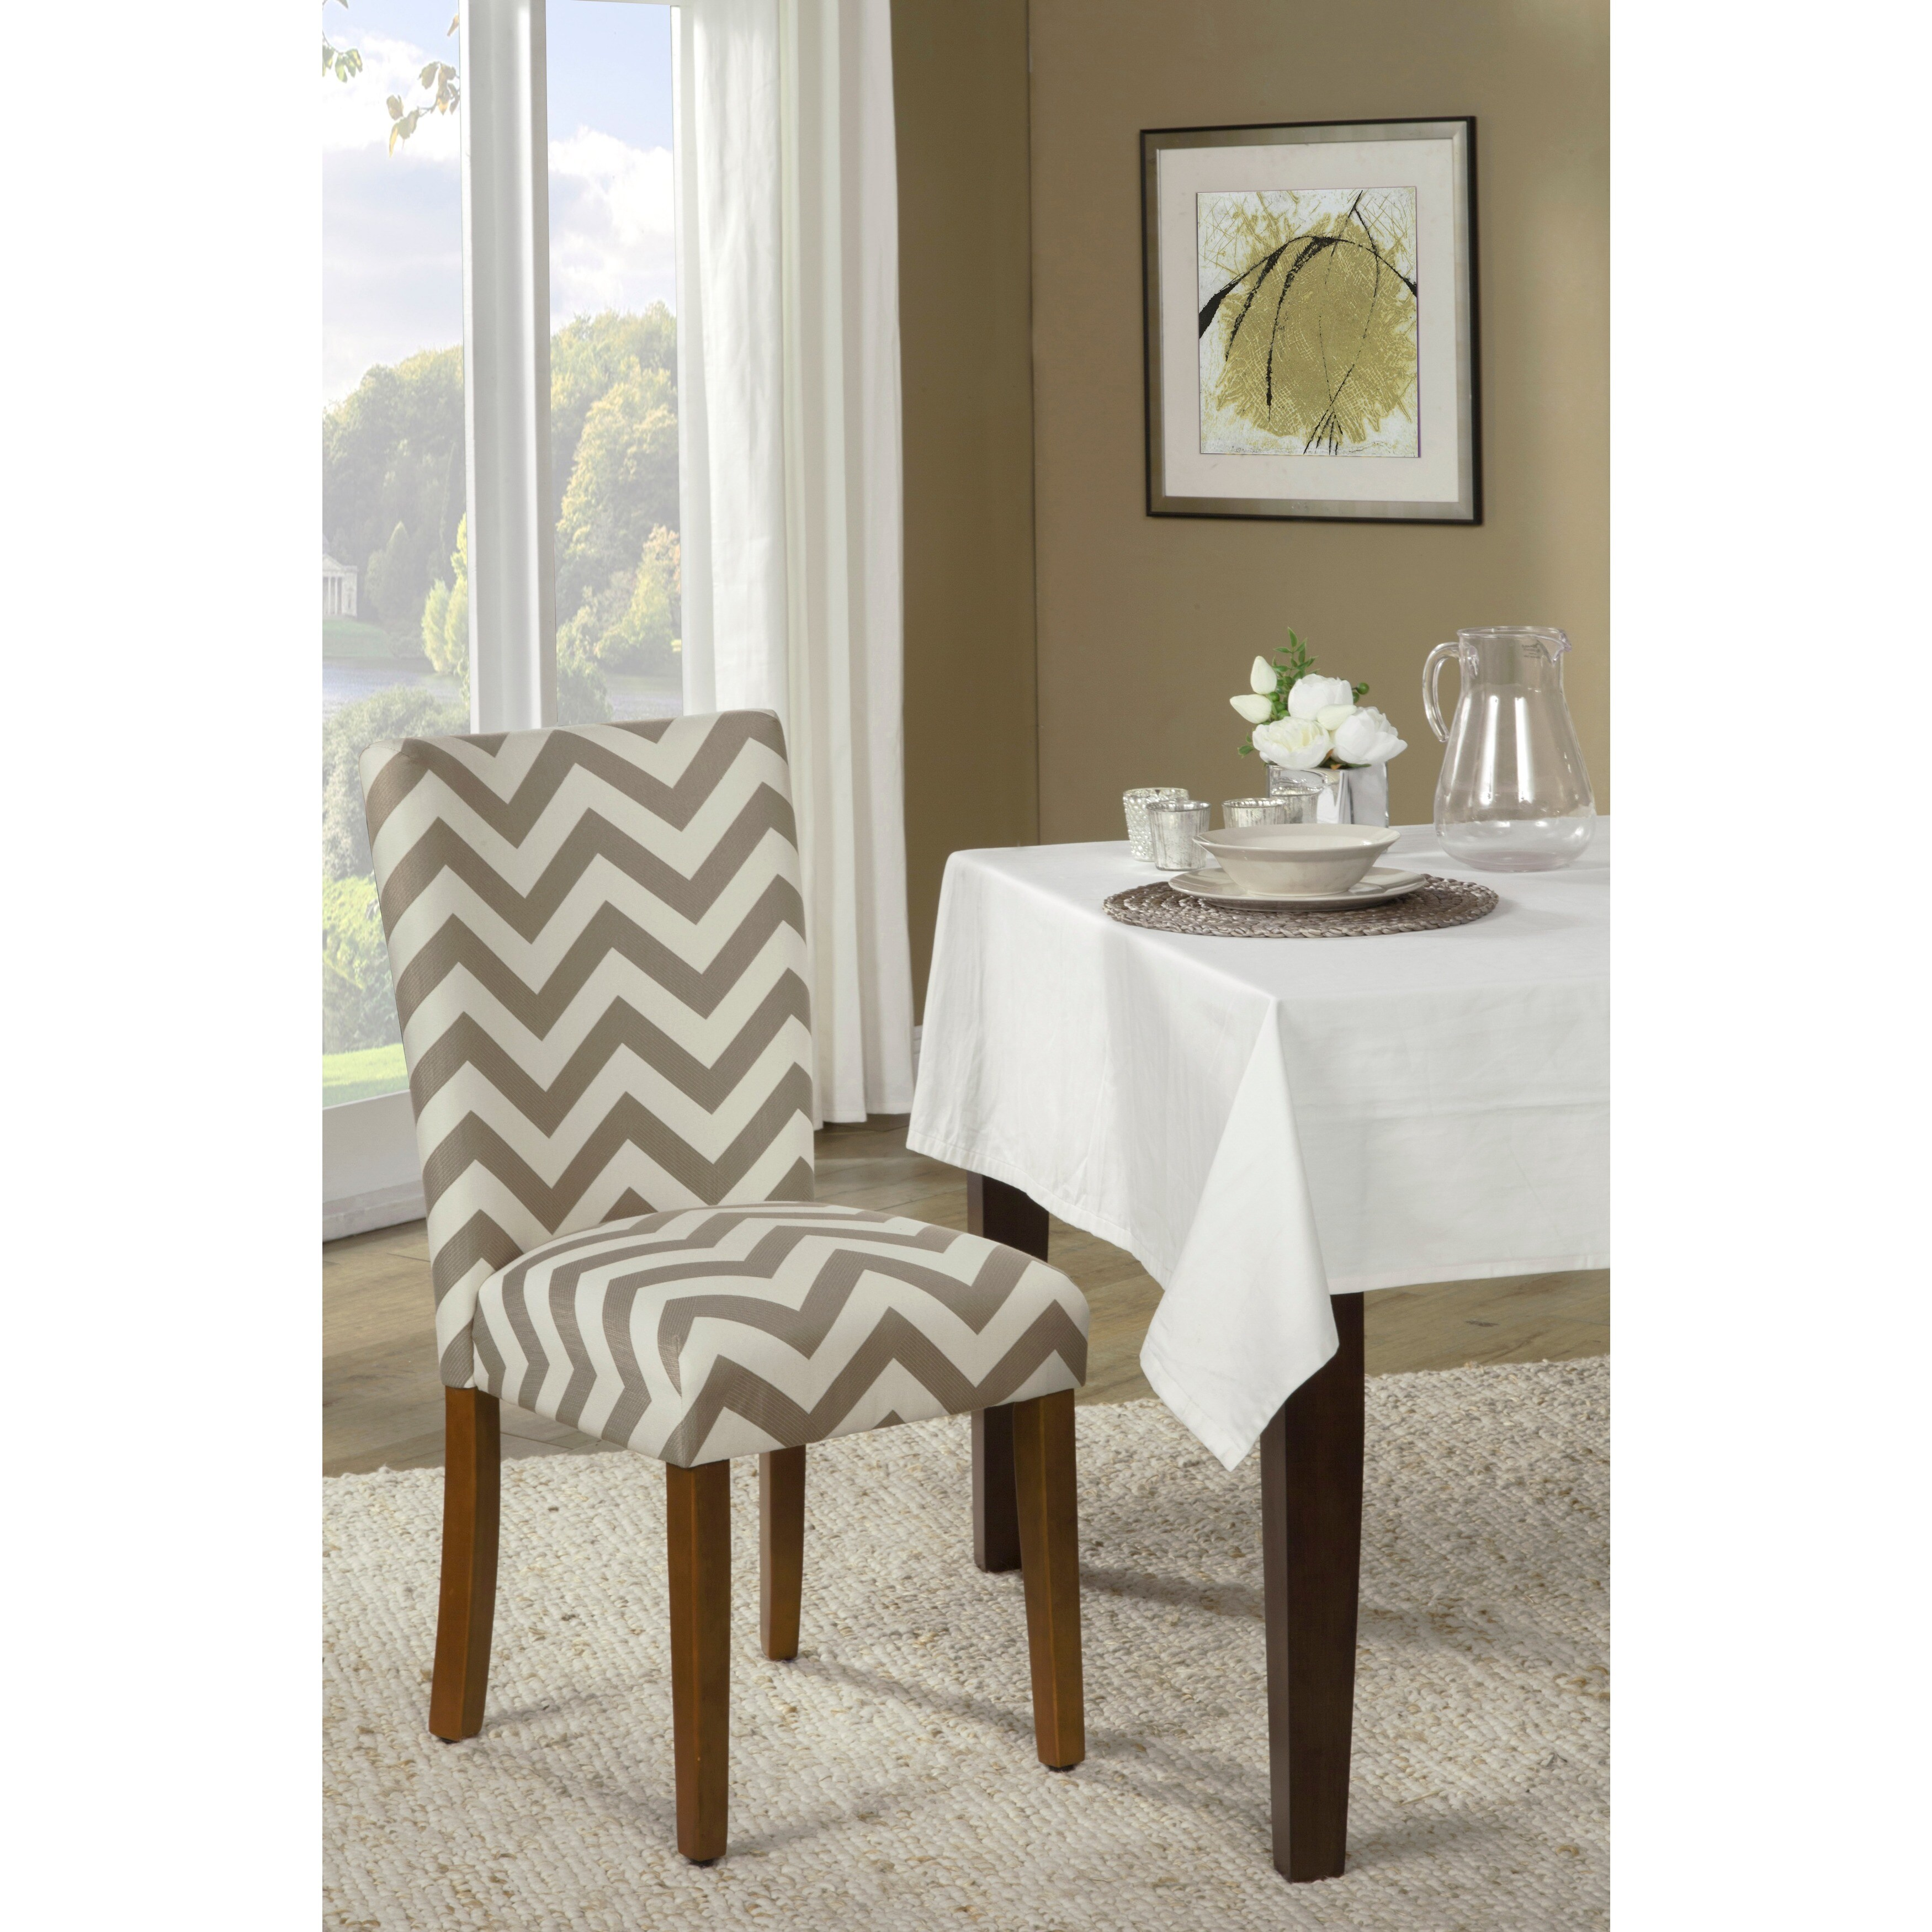 table value by item number set furniture products city piece parson and coaster dining chairs skirt chair parkins at w with